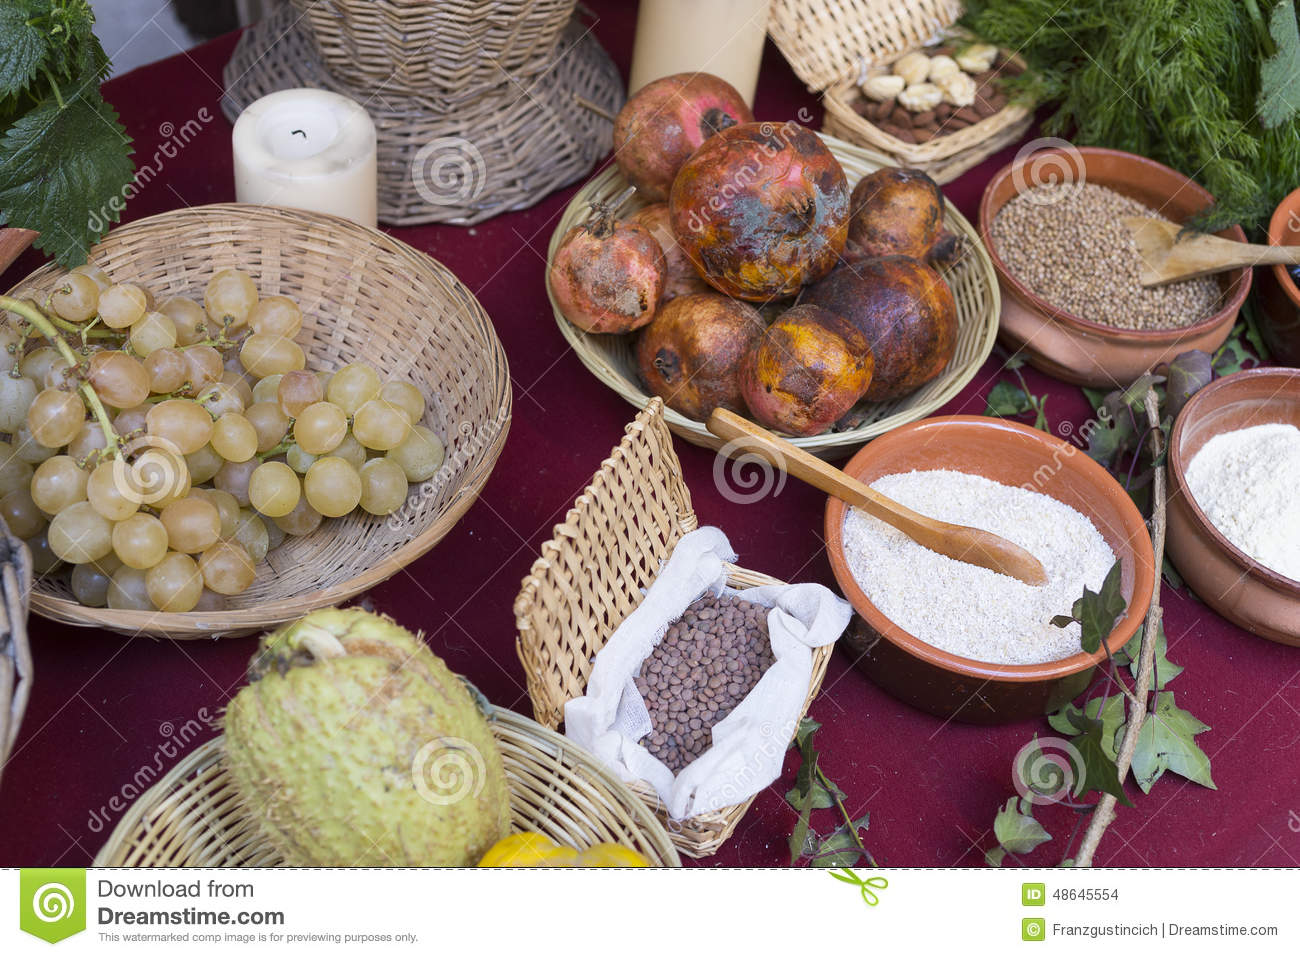 Ancient Roman Cuisine Of Roman Food From The Empire Stock Photo Image 48645554